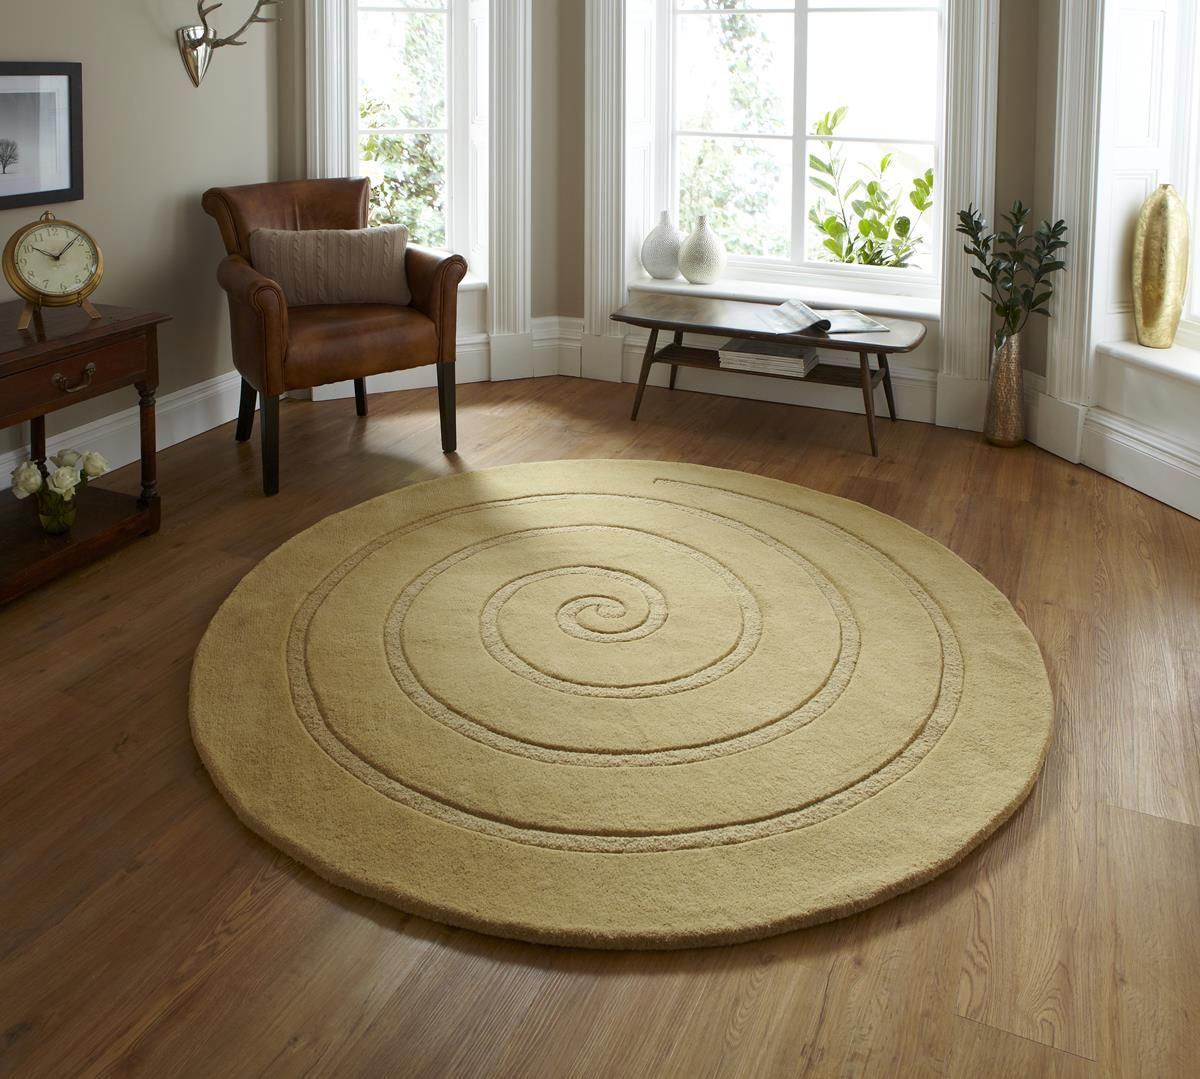 spiral gold circle rug contemporary luxury wool circular rugs